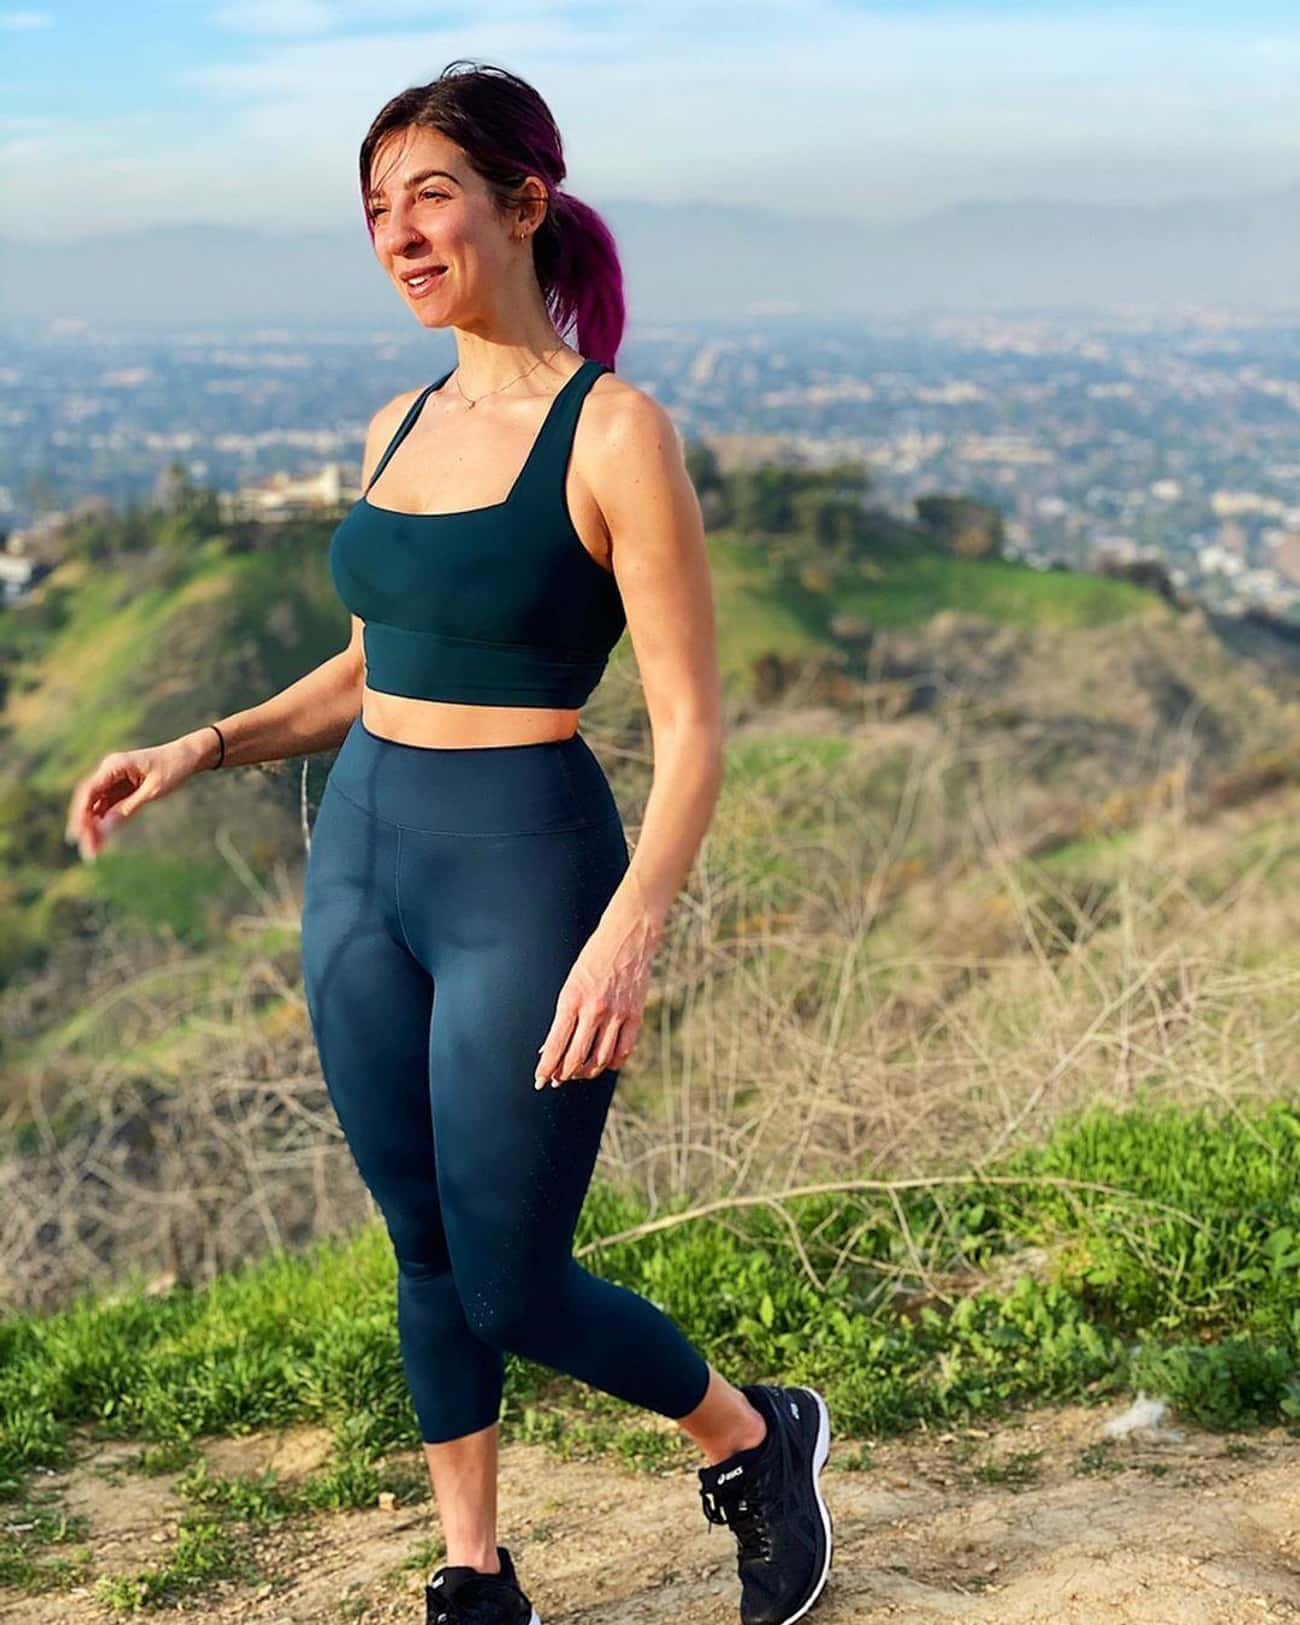 Read More About Gabbie Hanna is listed (or ranked) 3 on the list The Loves Of YouTuber Gabbie Hanna's Life